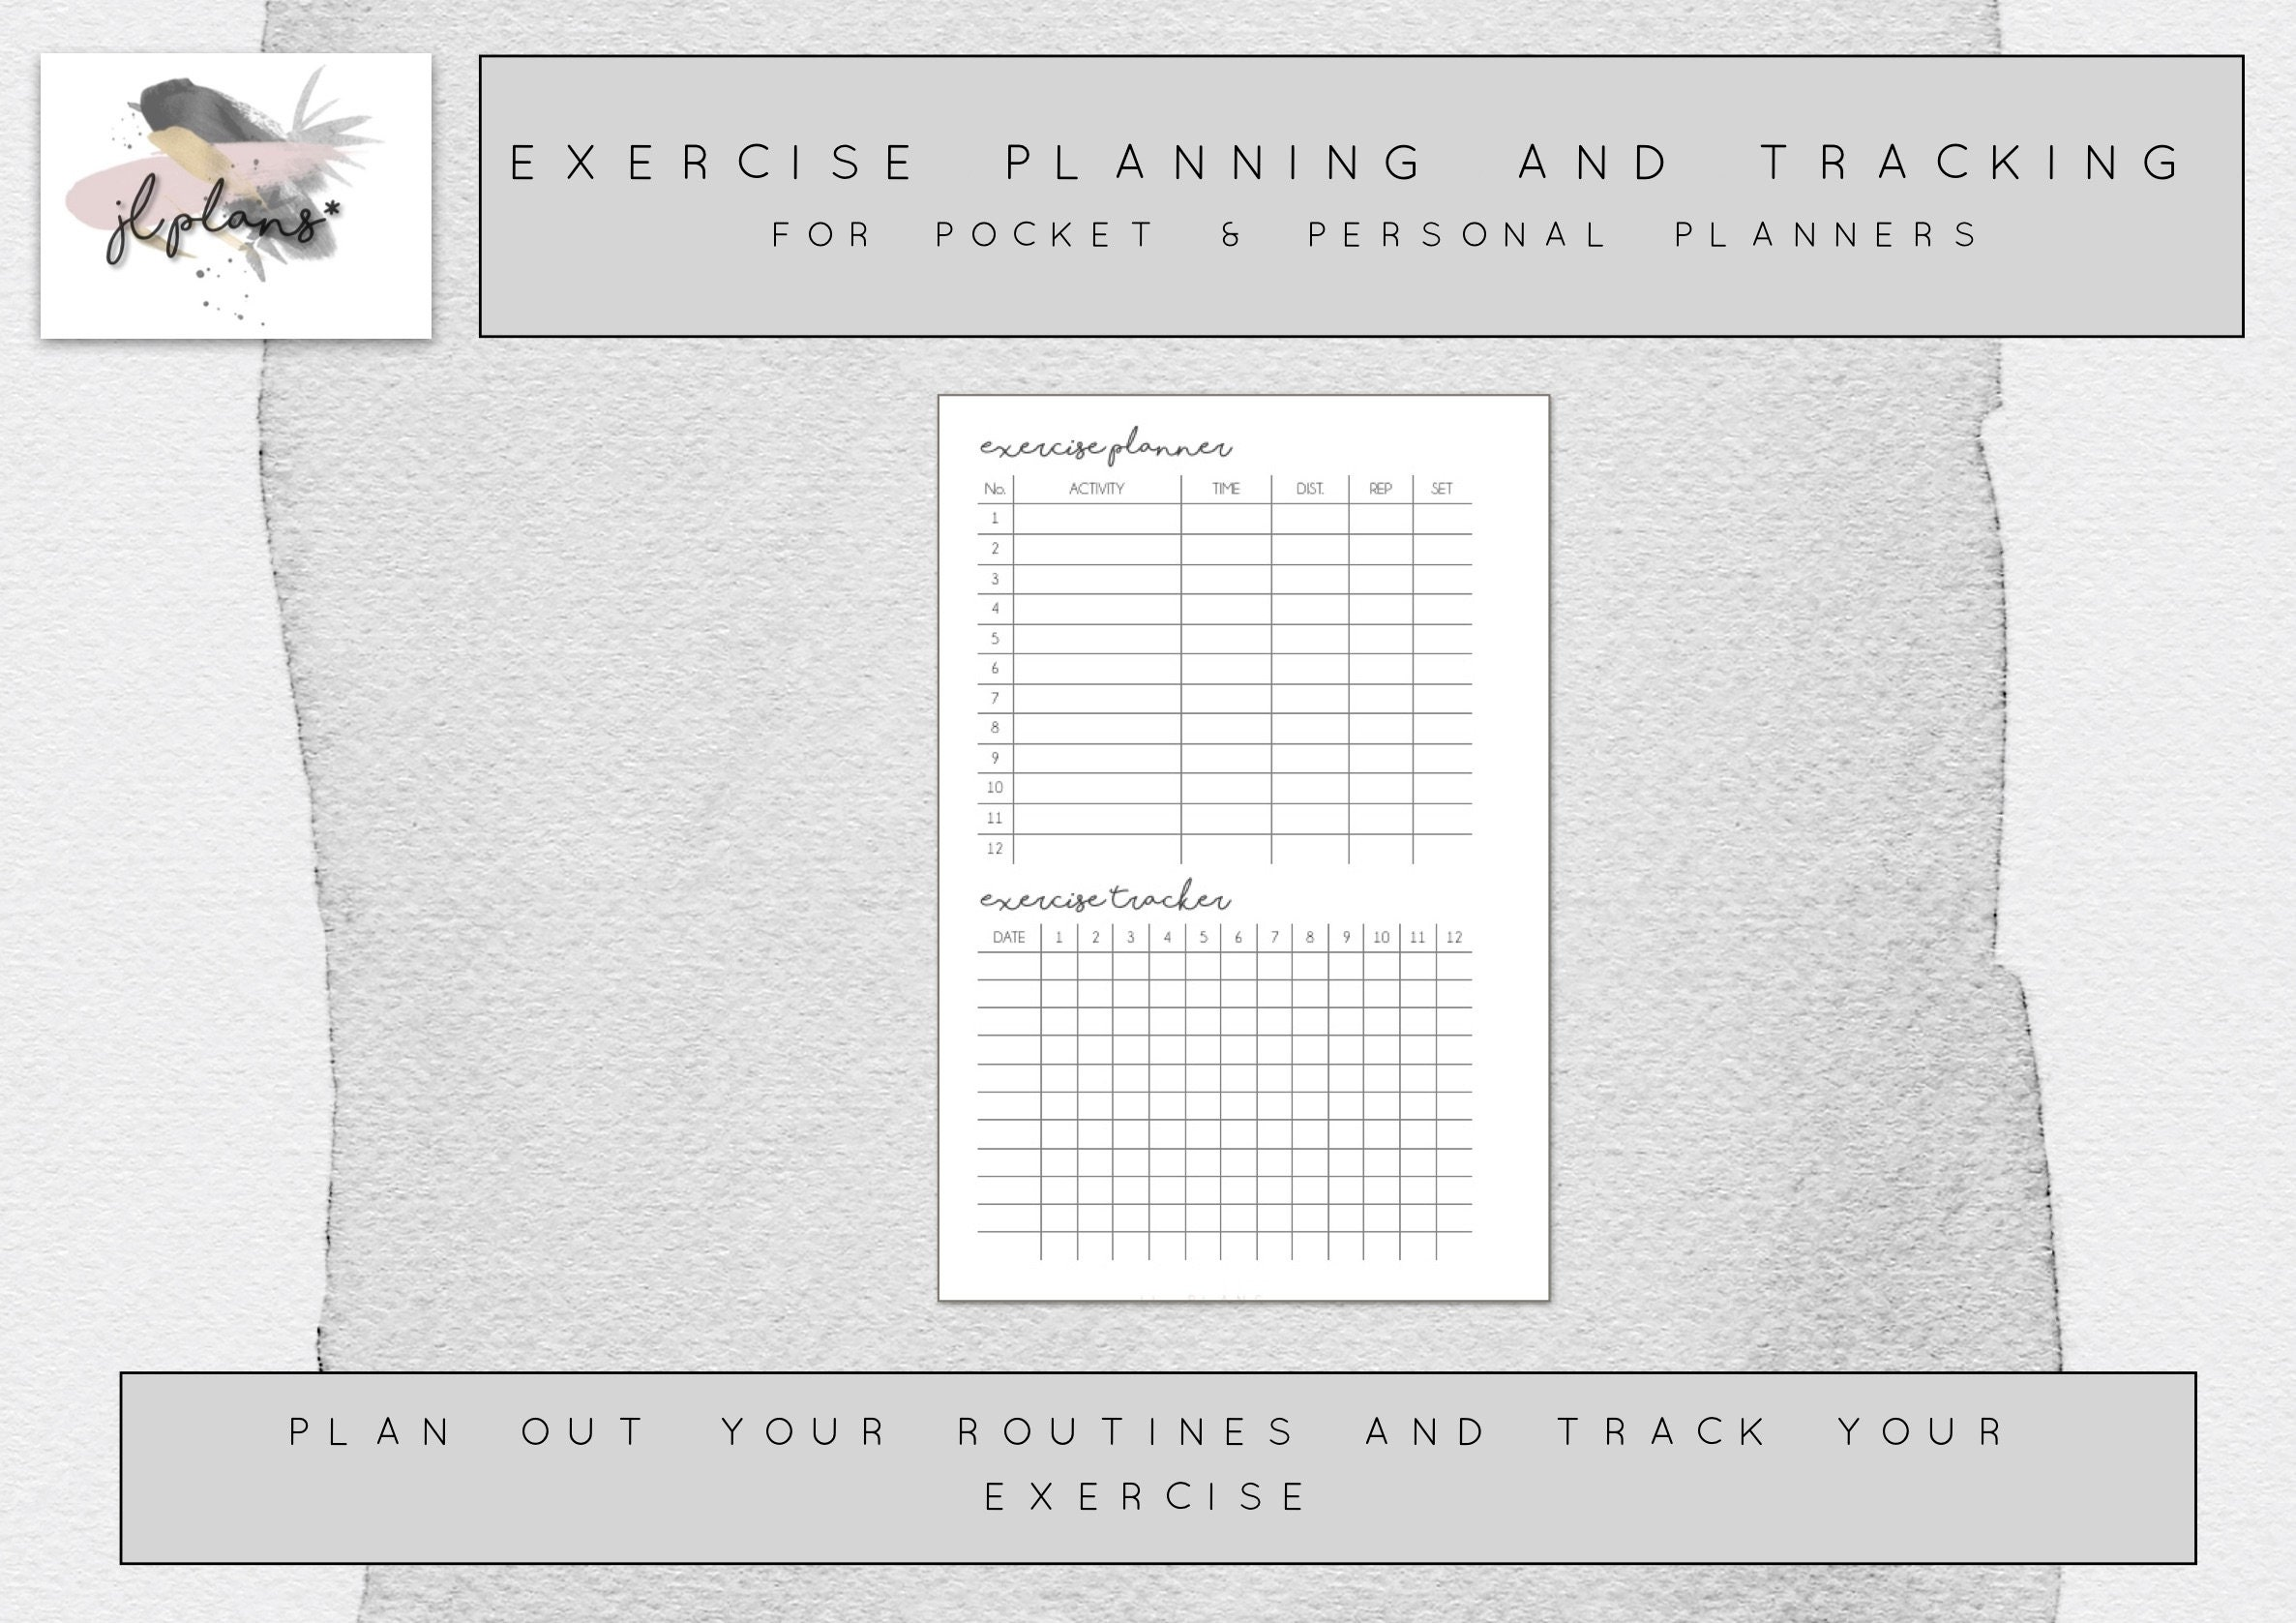 exercise planning and tracking printable for pocket planners etsy